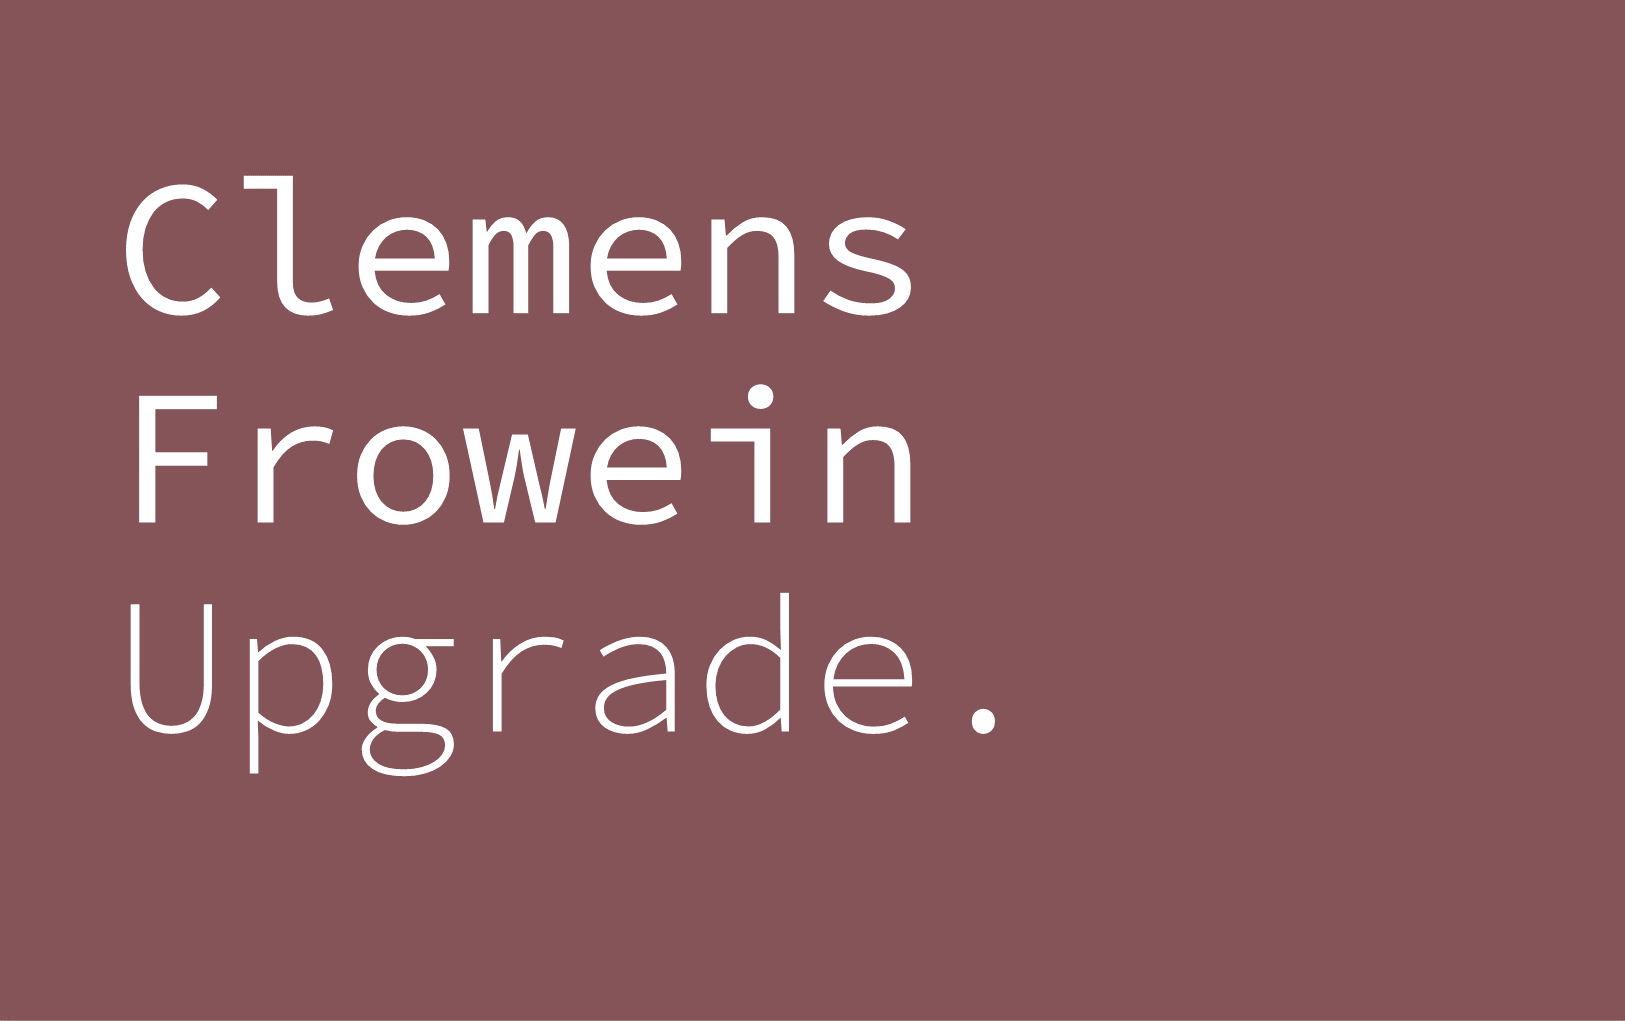 Clemens Frowein